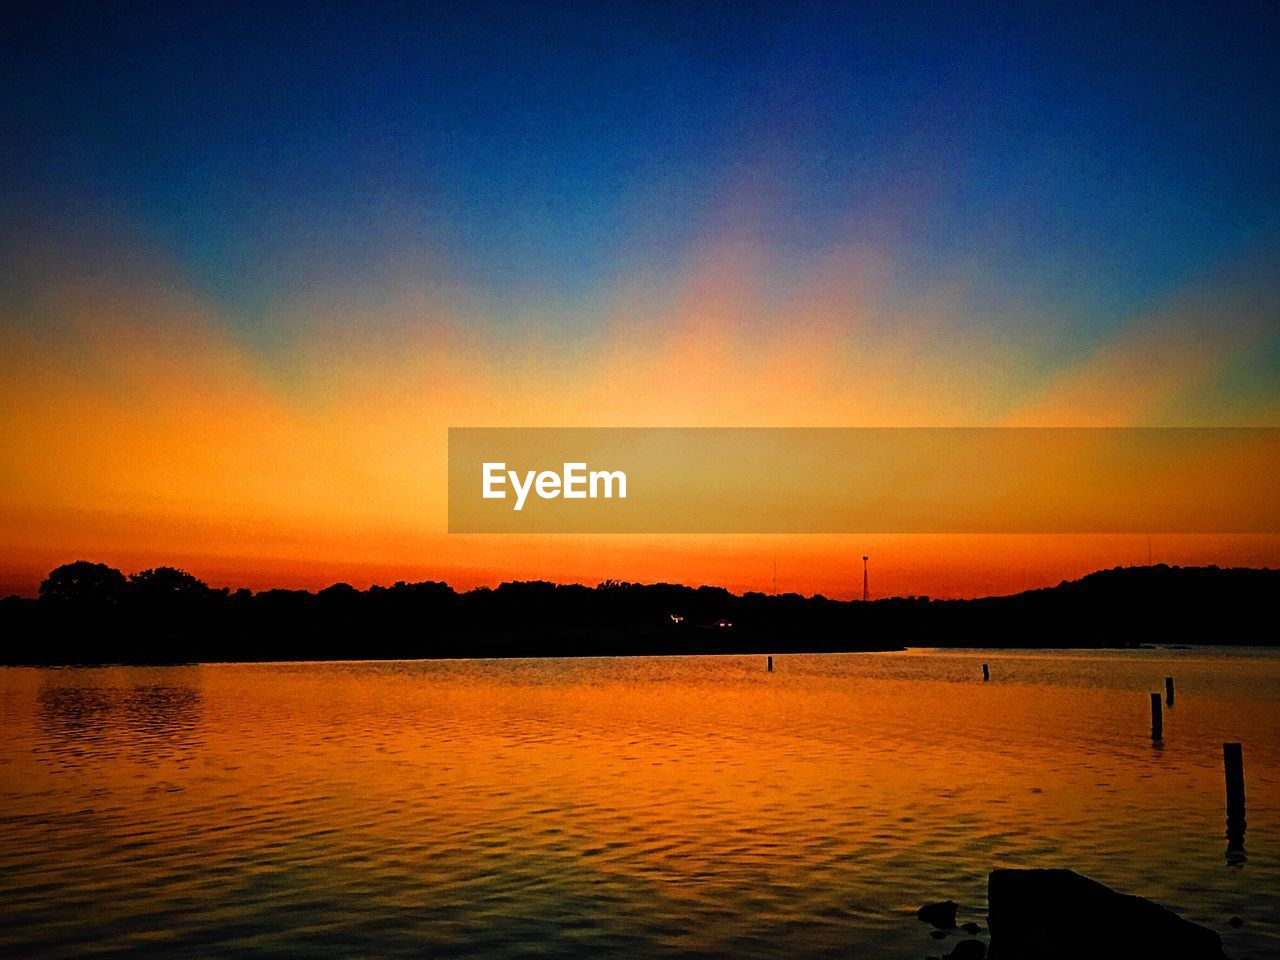 sunset, sky, water, beauty in nature, scenics - nature, silhouette, orange color, tranquility, tranquil scene, lake, nature, idyllic, no people, cloud - sky, reflection, non-urban scene, outdoors, dramatic sky, copy space, romantic sky